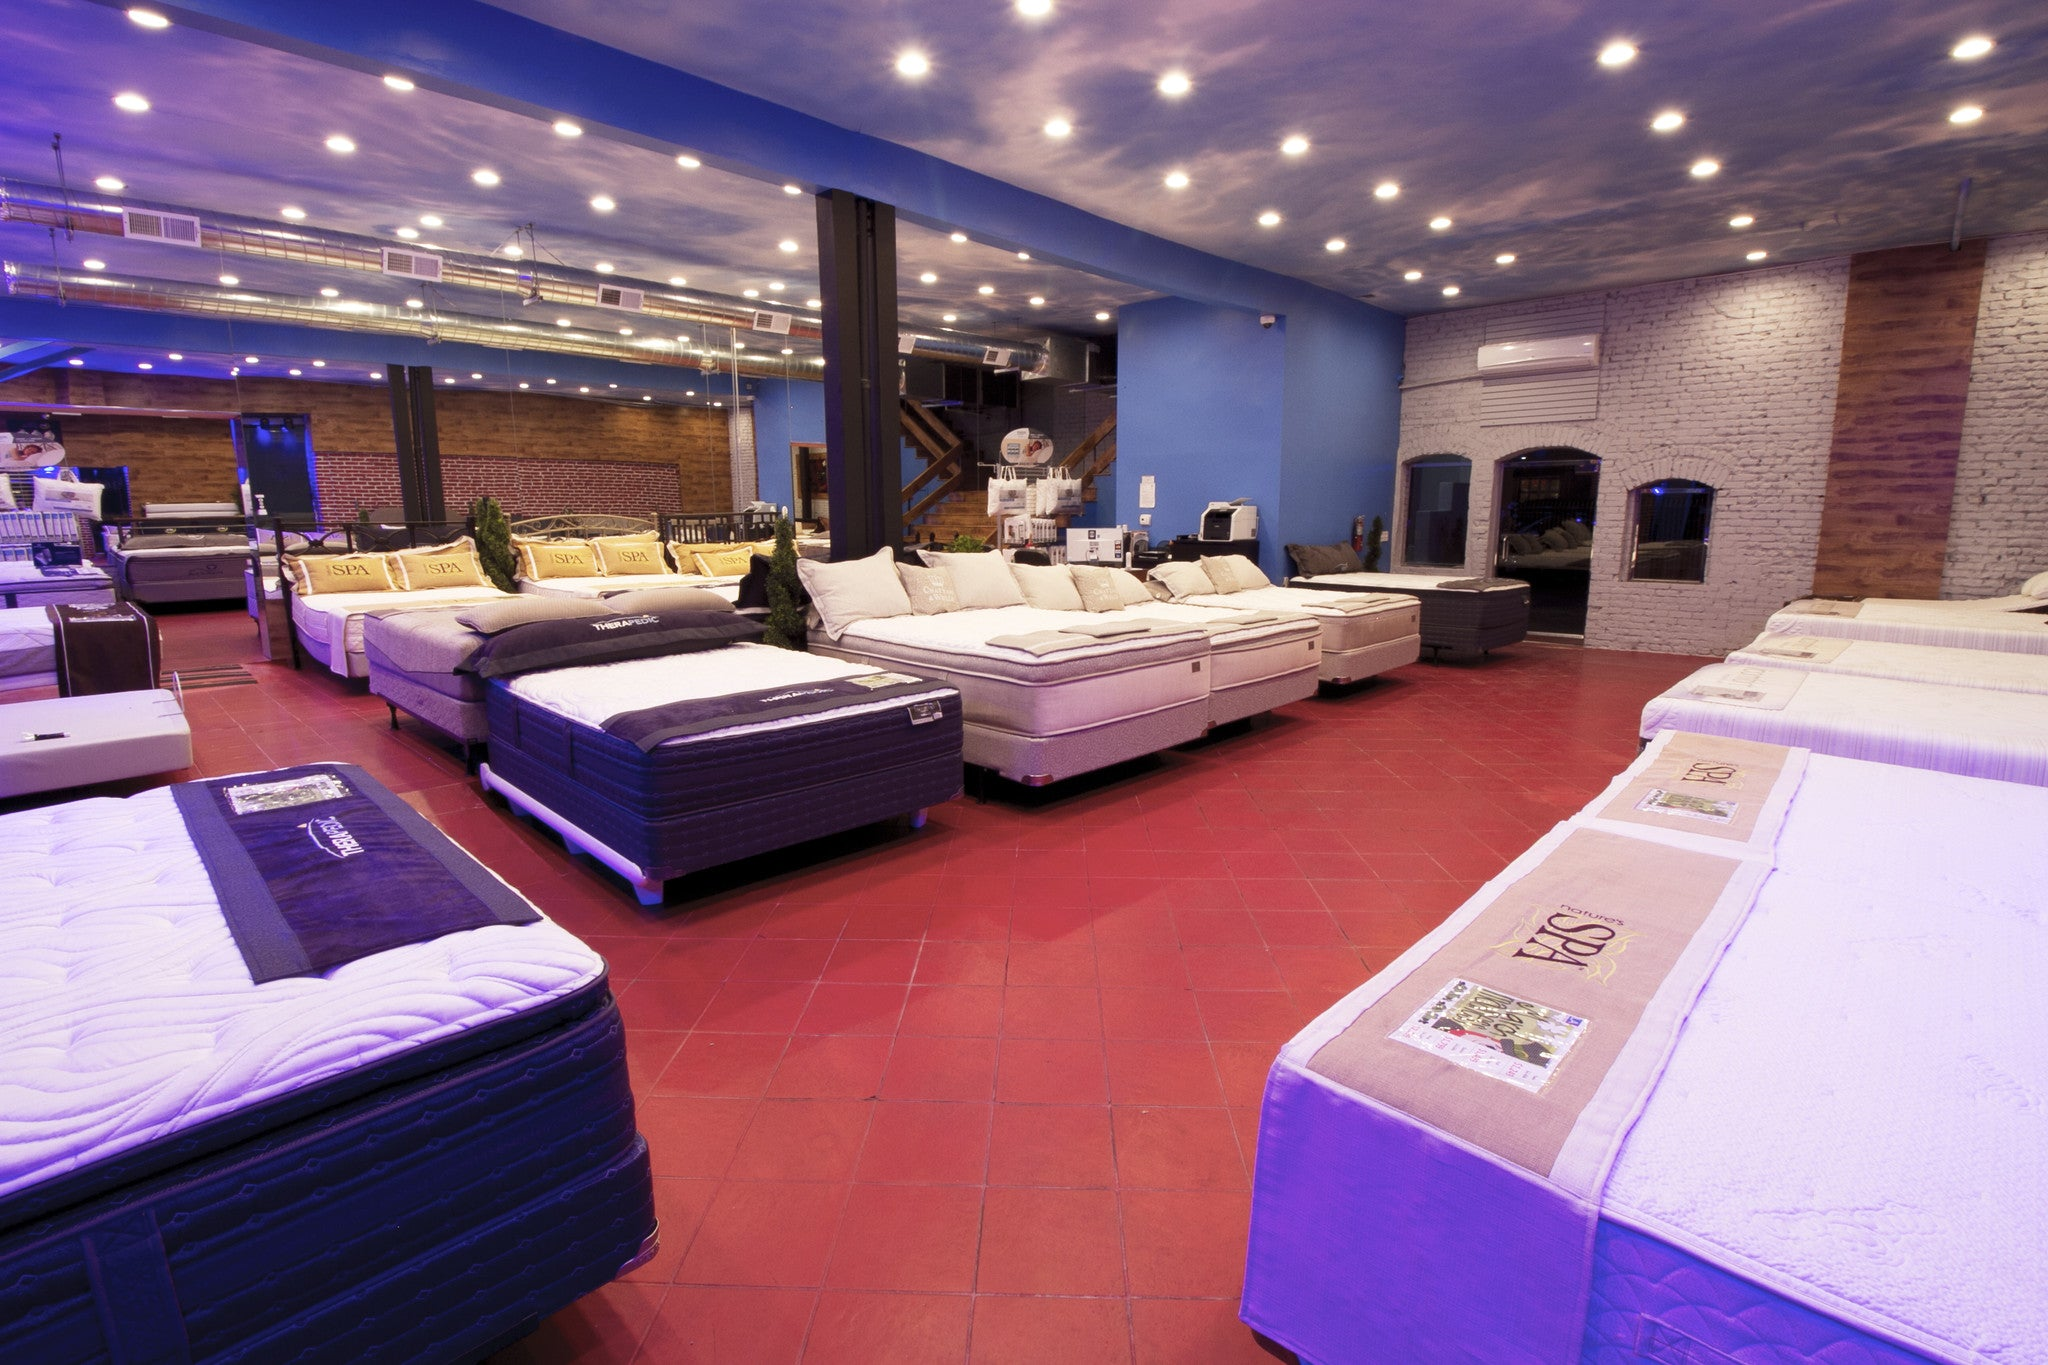 Mattresses In Koreatown Visit Our Mattress Store In